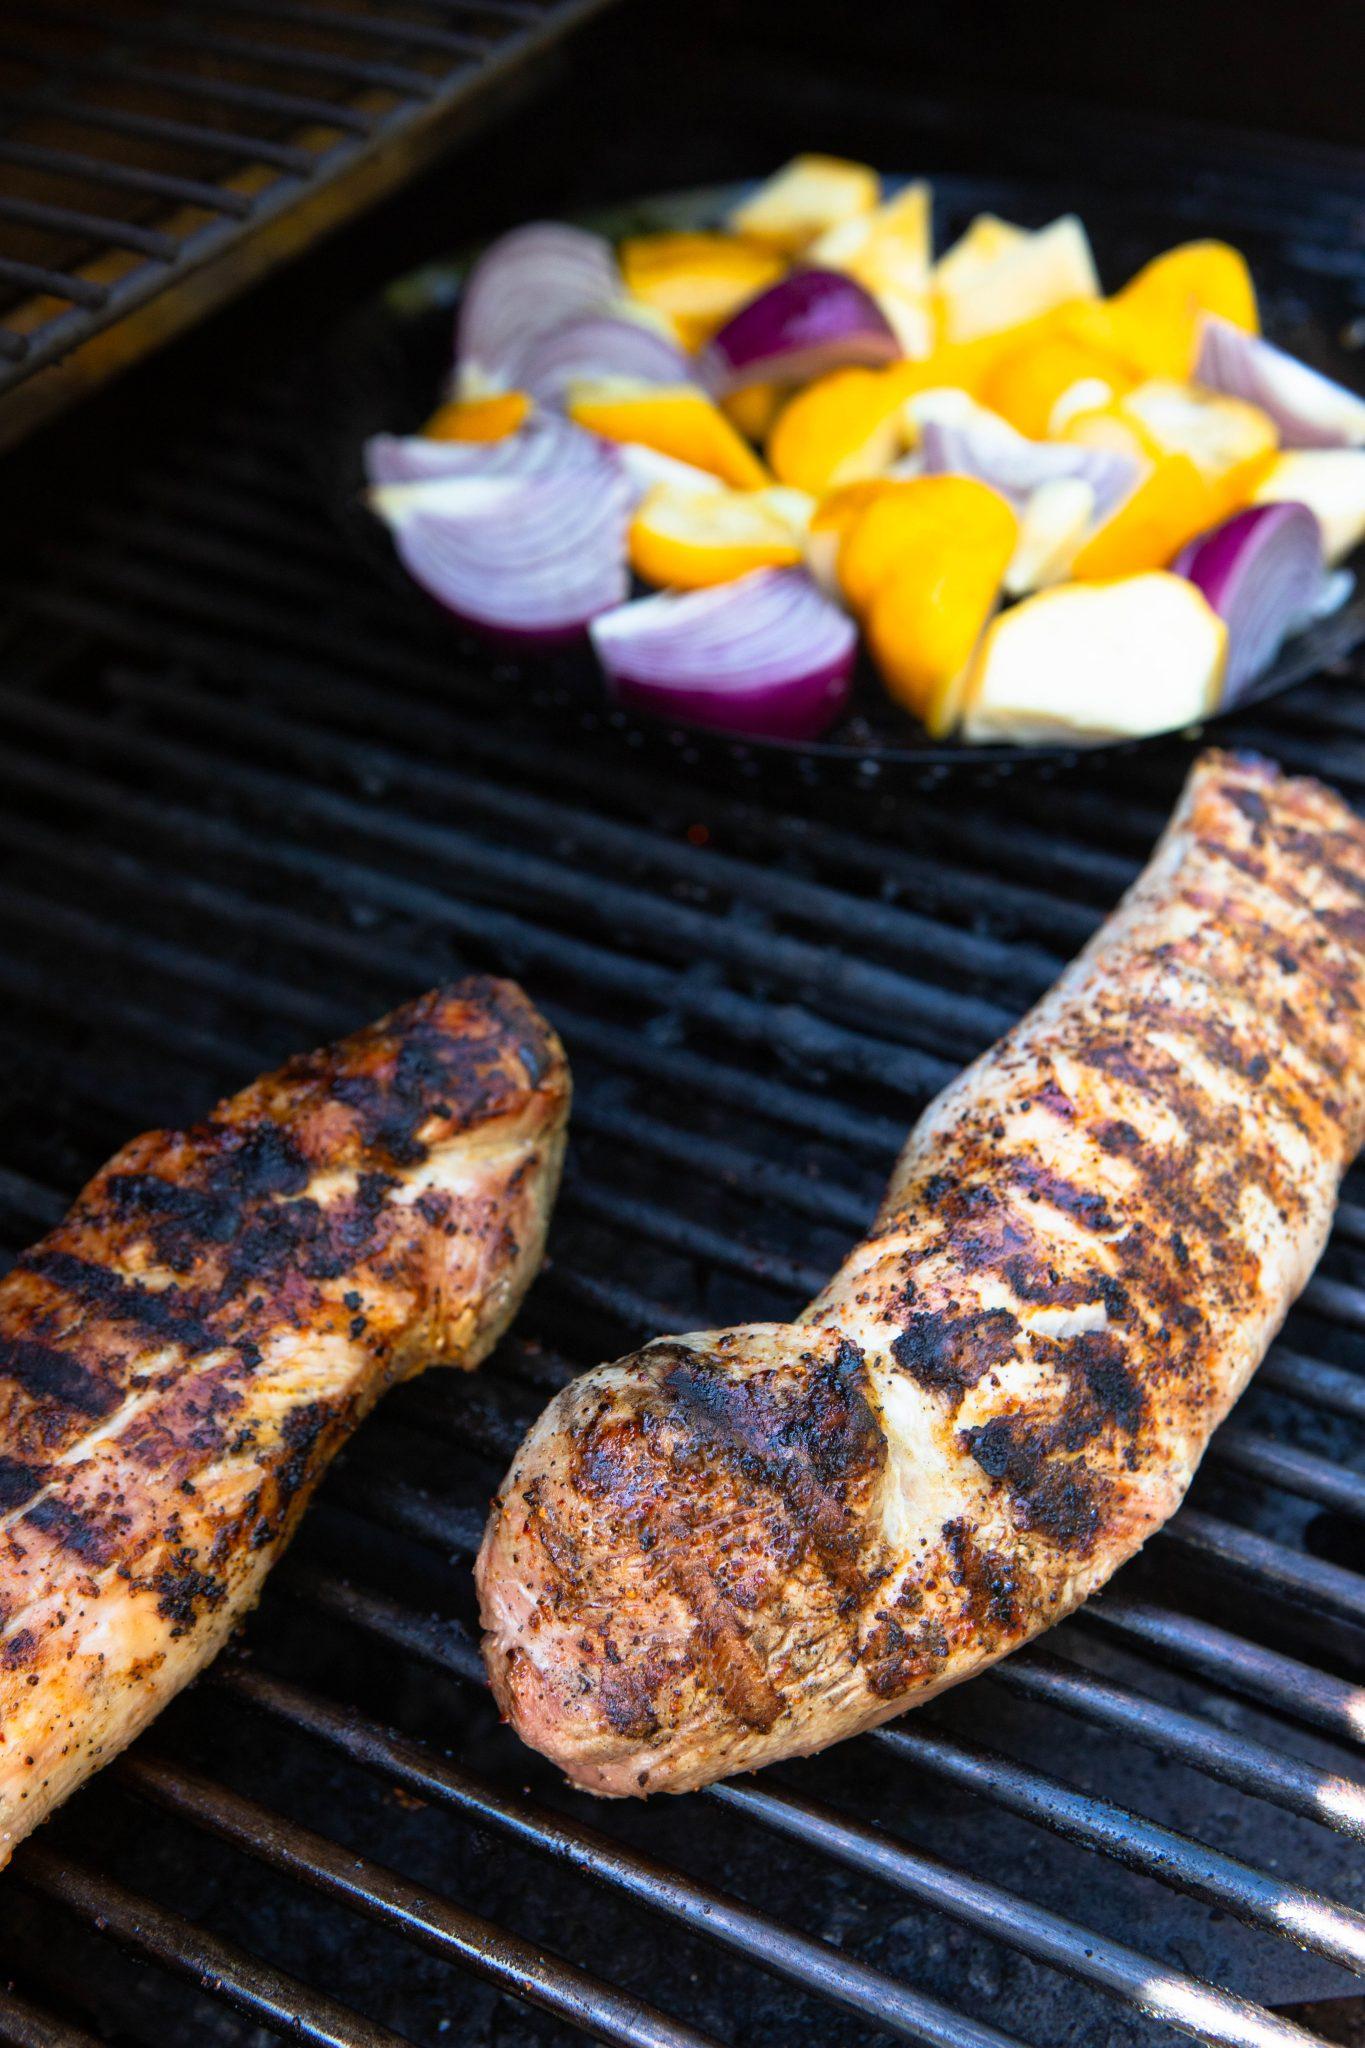 2 pieces of pork tenderloin and summer vegetables on a bbq grill